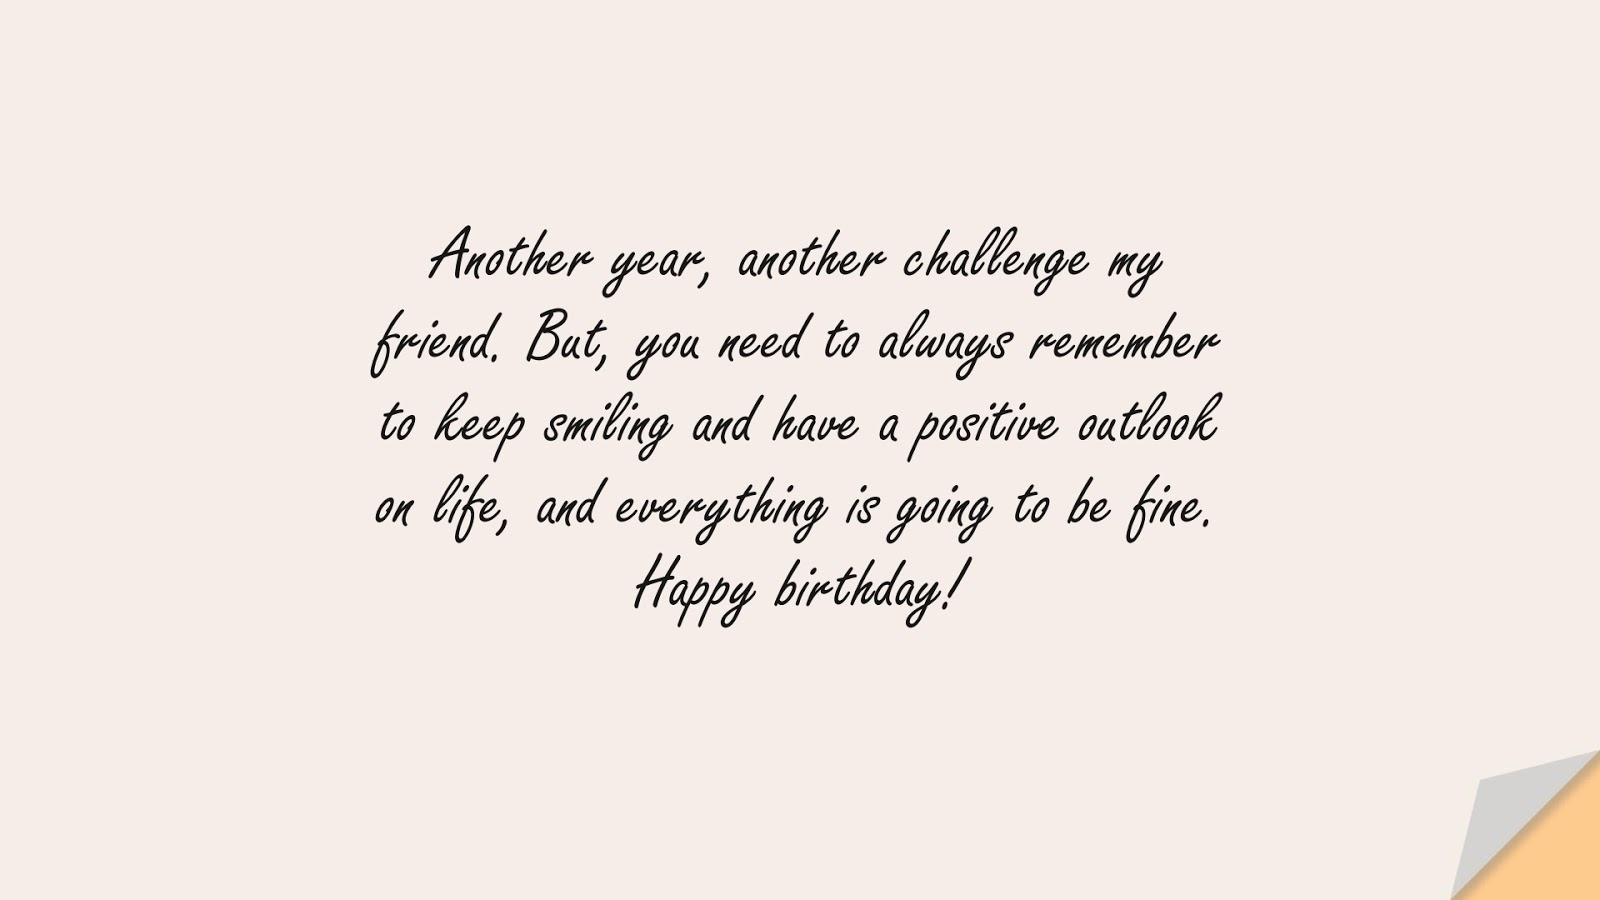 Another year, another challenge my friend. But, you need to always remember to keep smiling and have a positive outlook on life, and everything is going to be fine. Happy birthday!FALSE